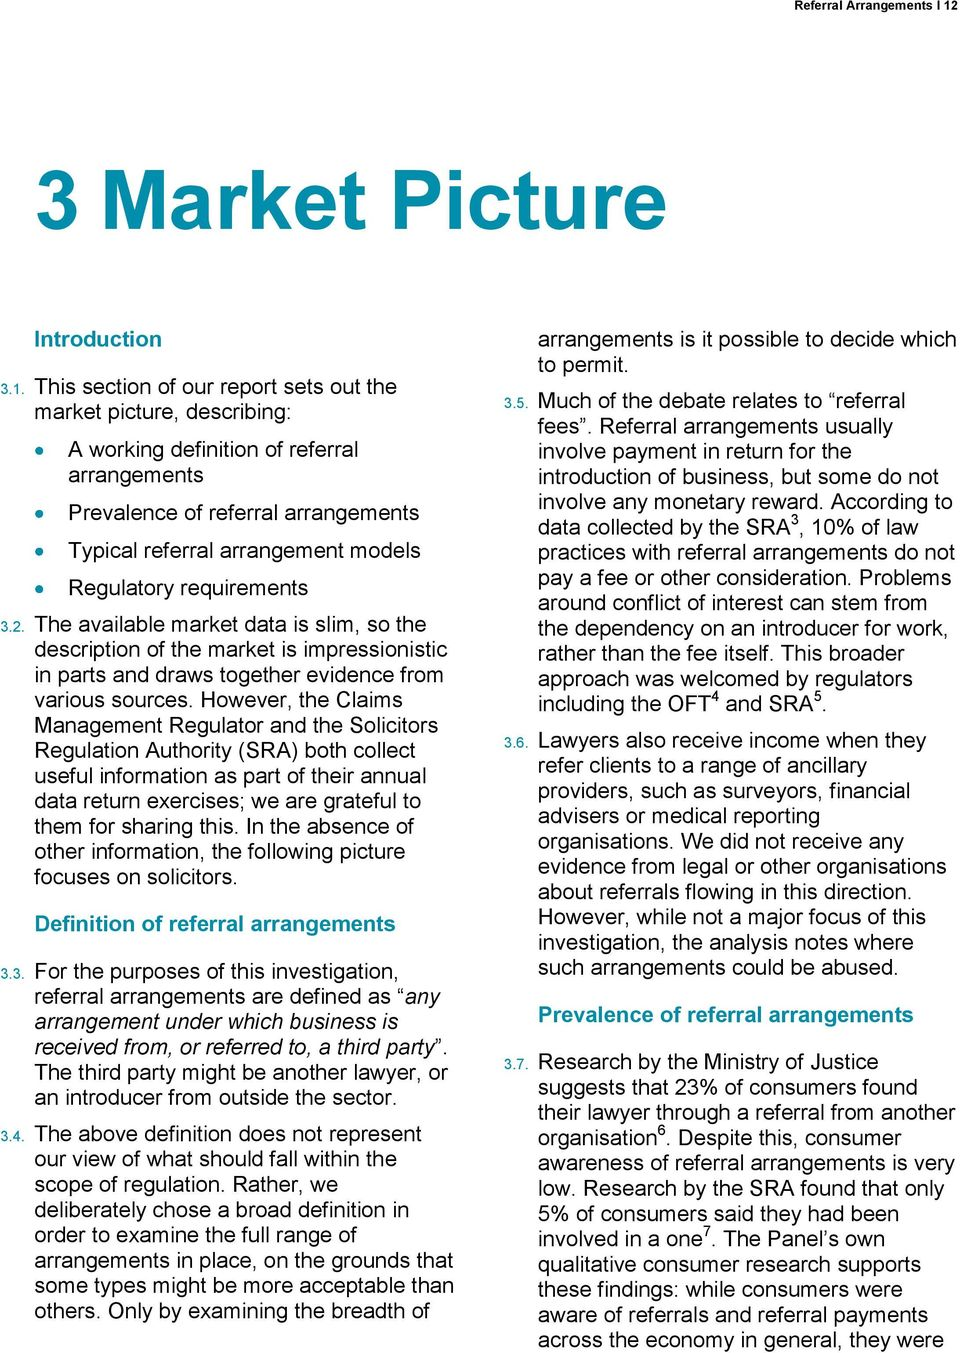 This section of our report sets out the market picture, describing: A working definition of referral arrangements Prevalence of referral arrangements Typical referral arrangement models Regulatory